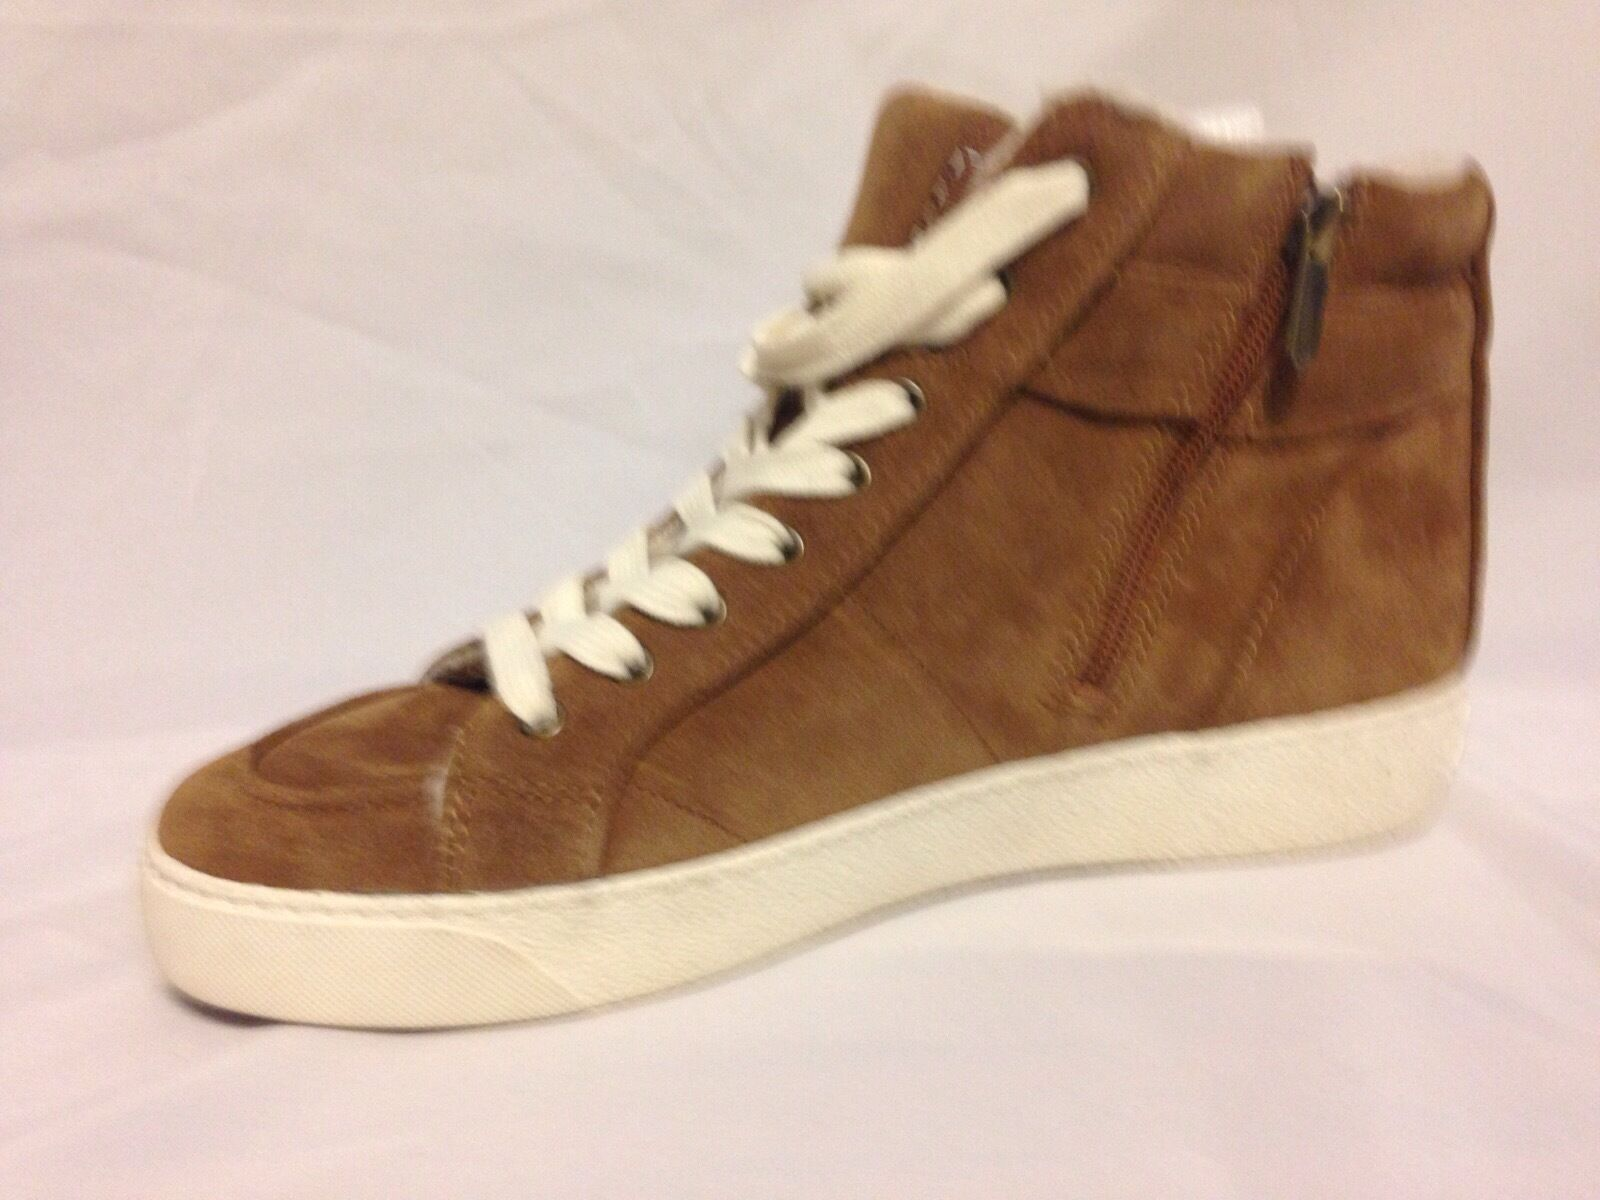 Sam Edelman Britt High Top Sneaker Mocha Suede Suede Suede D8071L1200 New with Box fa6321